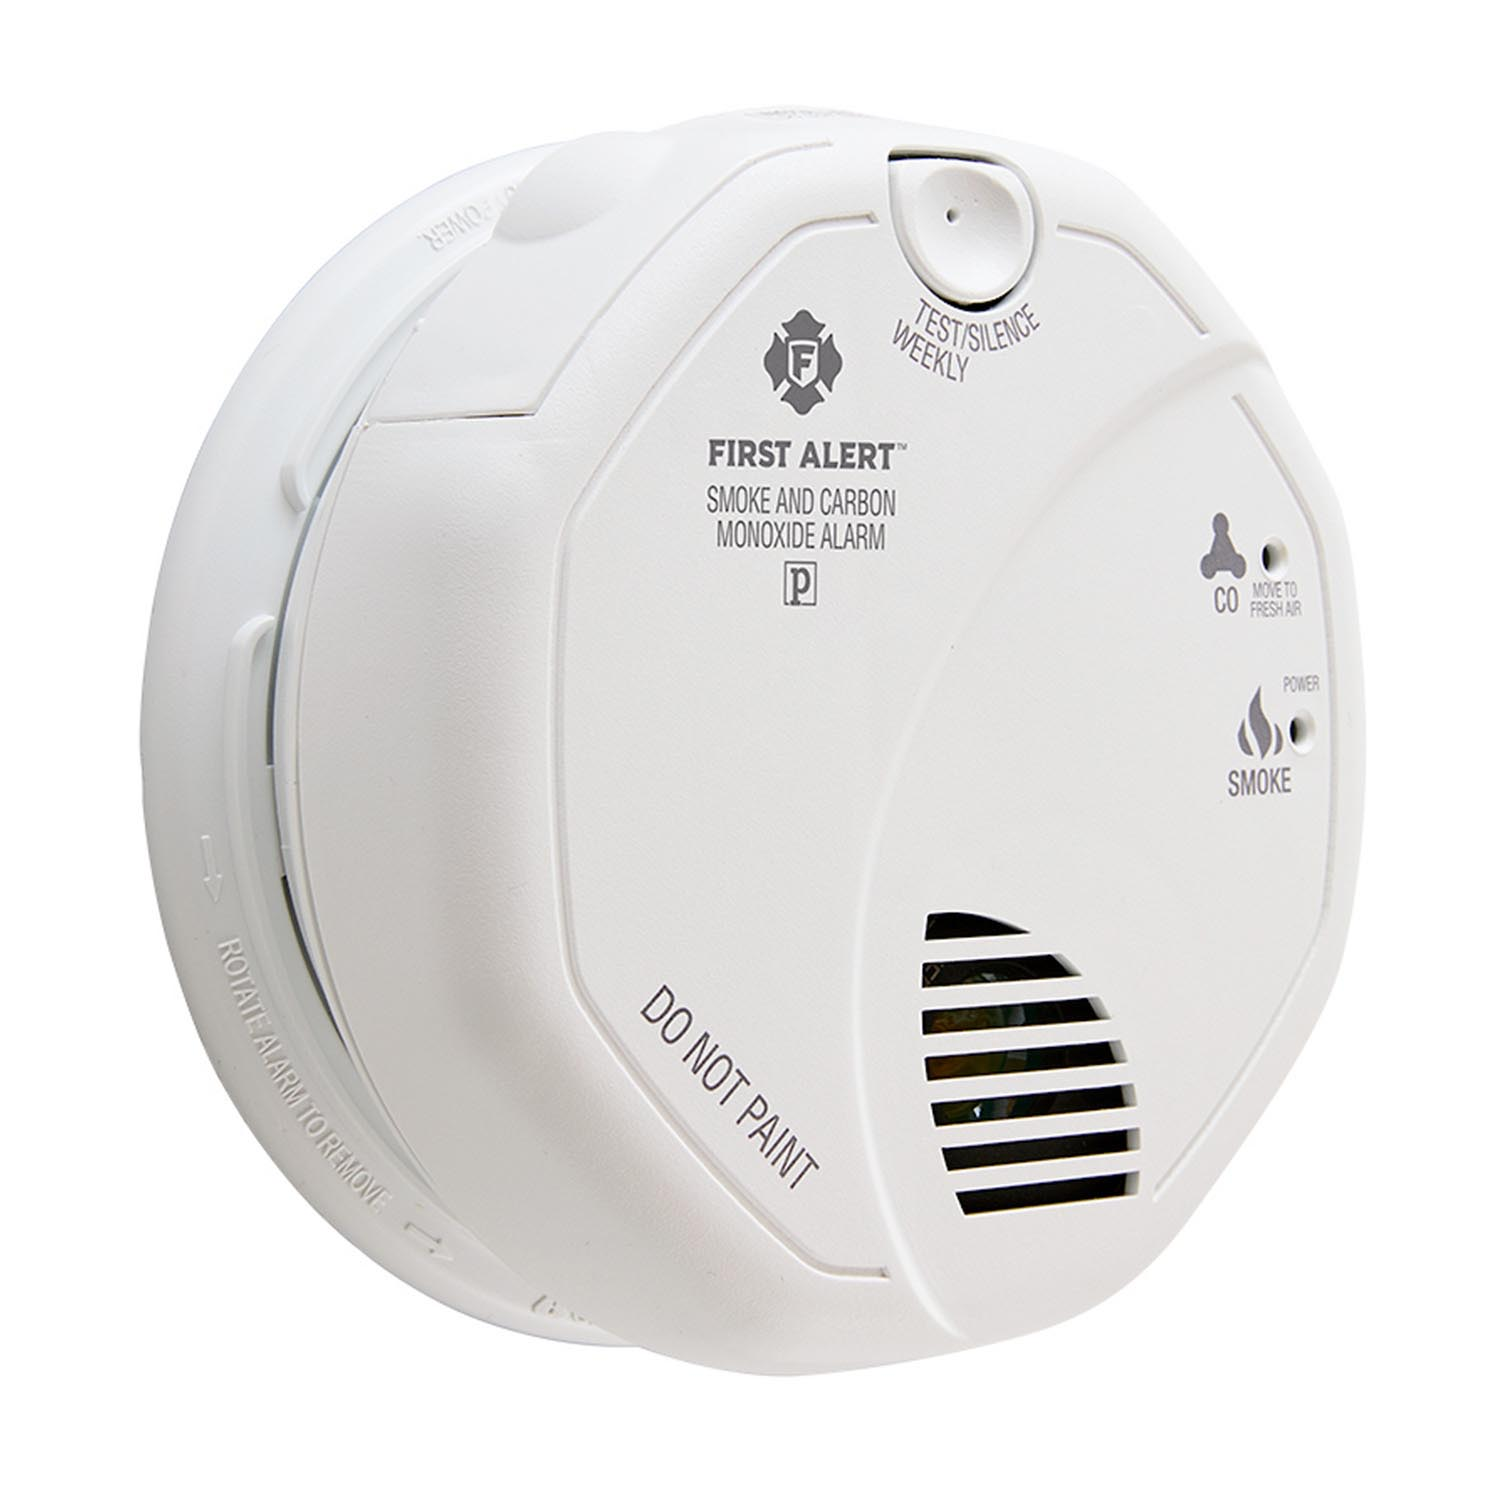 First Alert Hardwired Photoelectric Smoke and Carbon Monoxide Alarm with Battery Backup - SC7010B